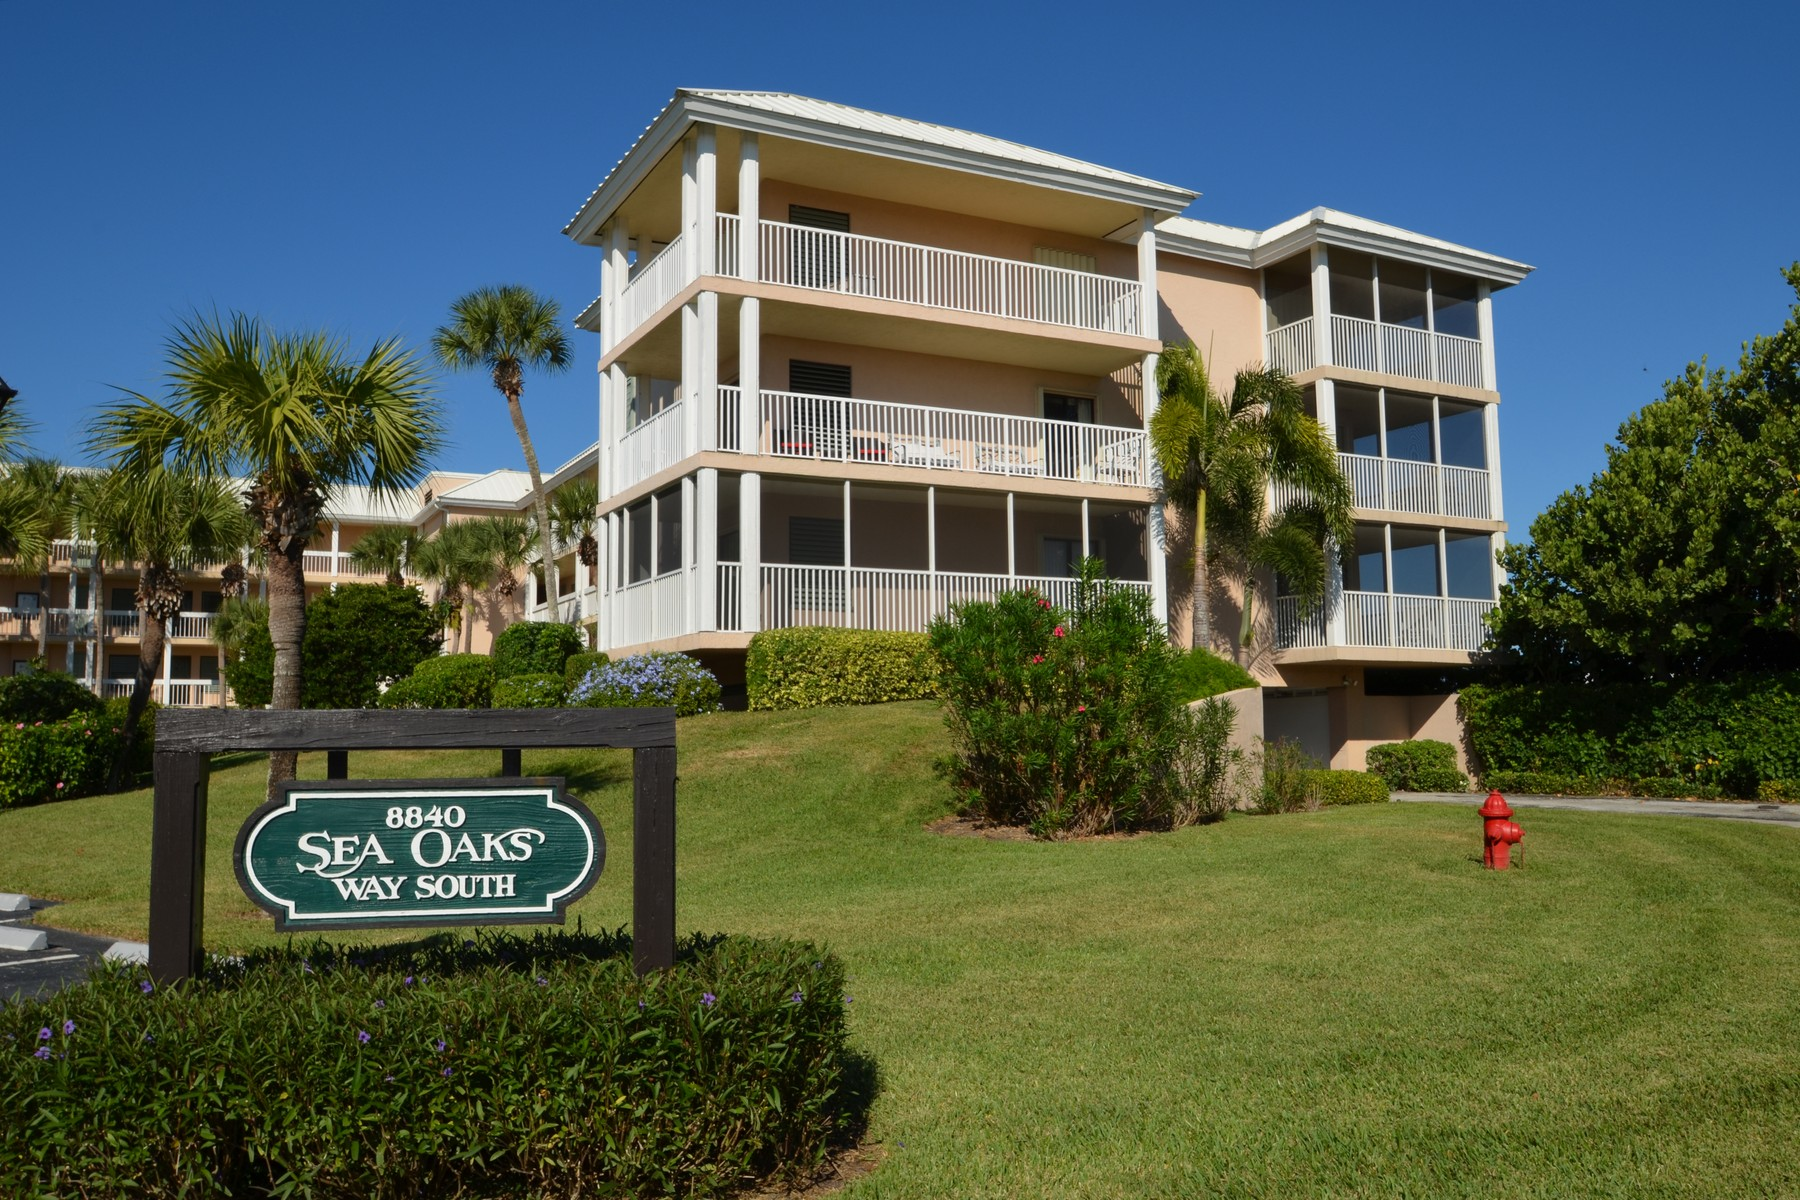 Additional photo for property listing at Sea Oaks Oceanfront Condo 8840 S Sea Oaks Way #206 Vero Beach, Florida 32963 United States